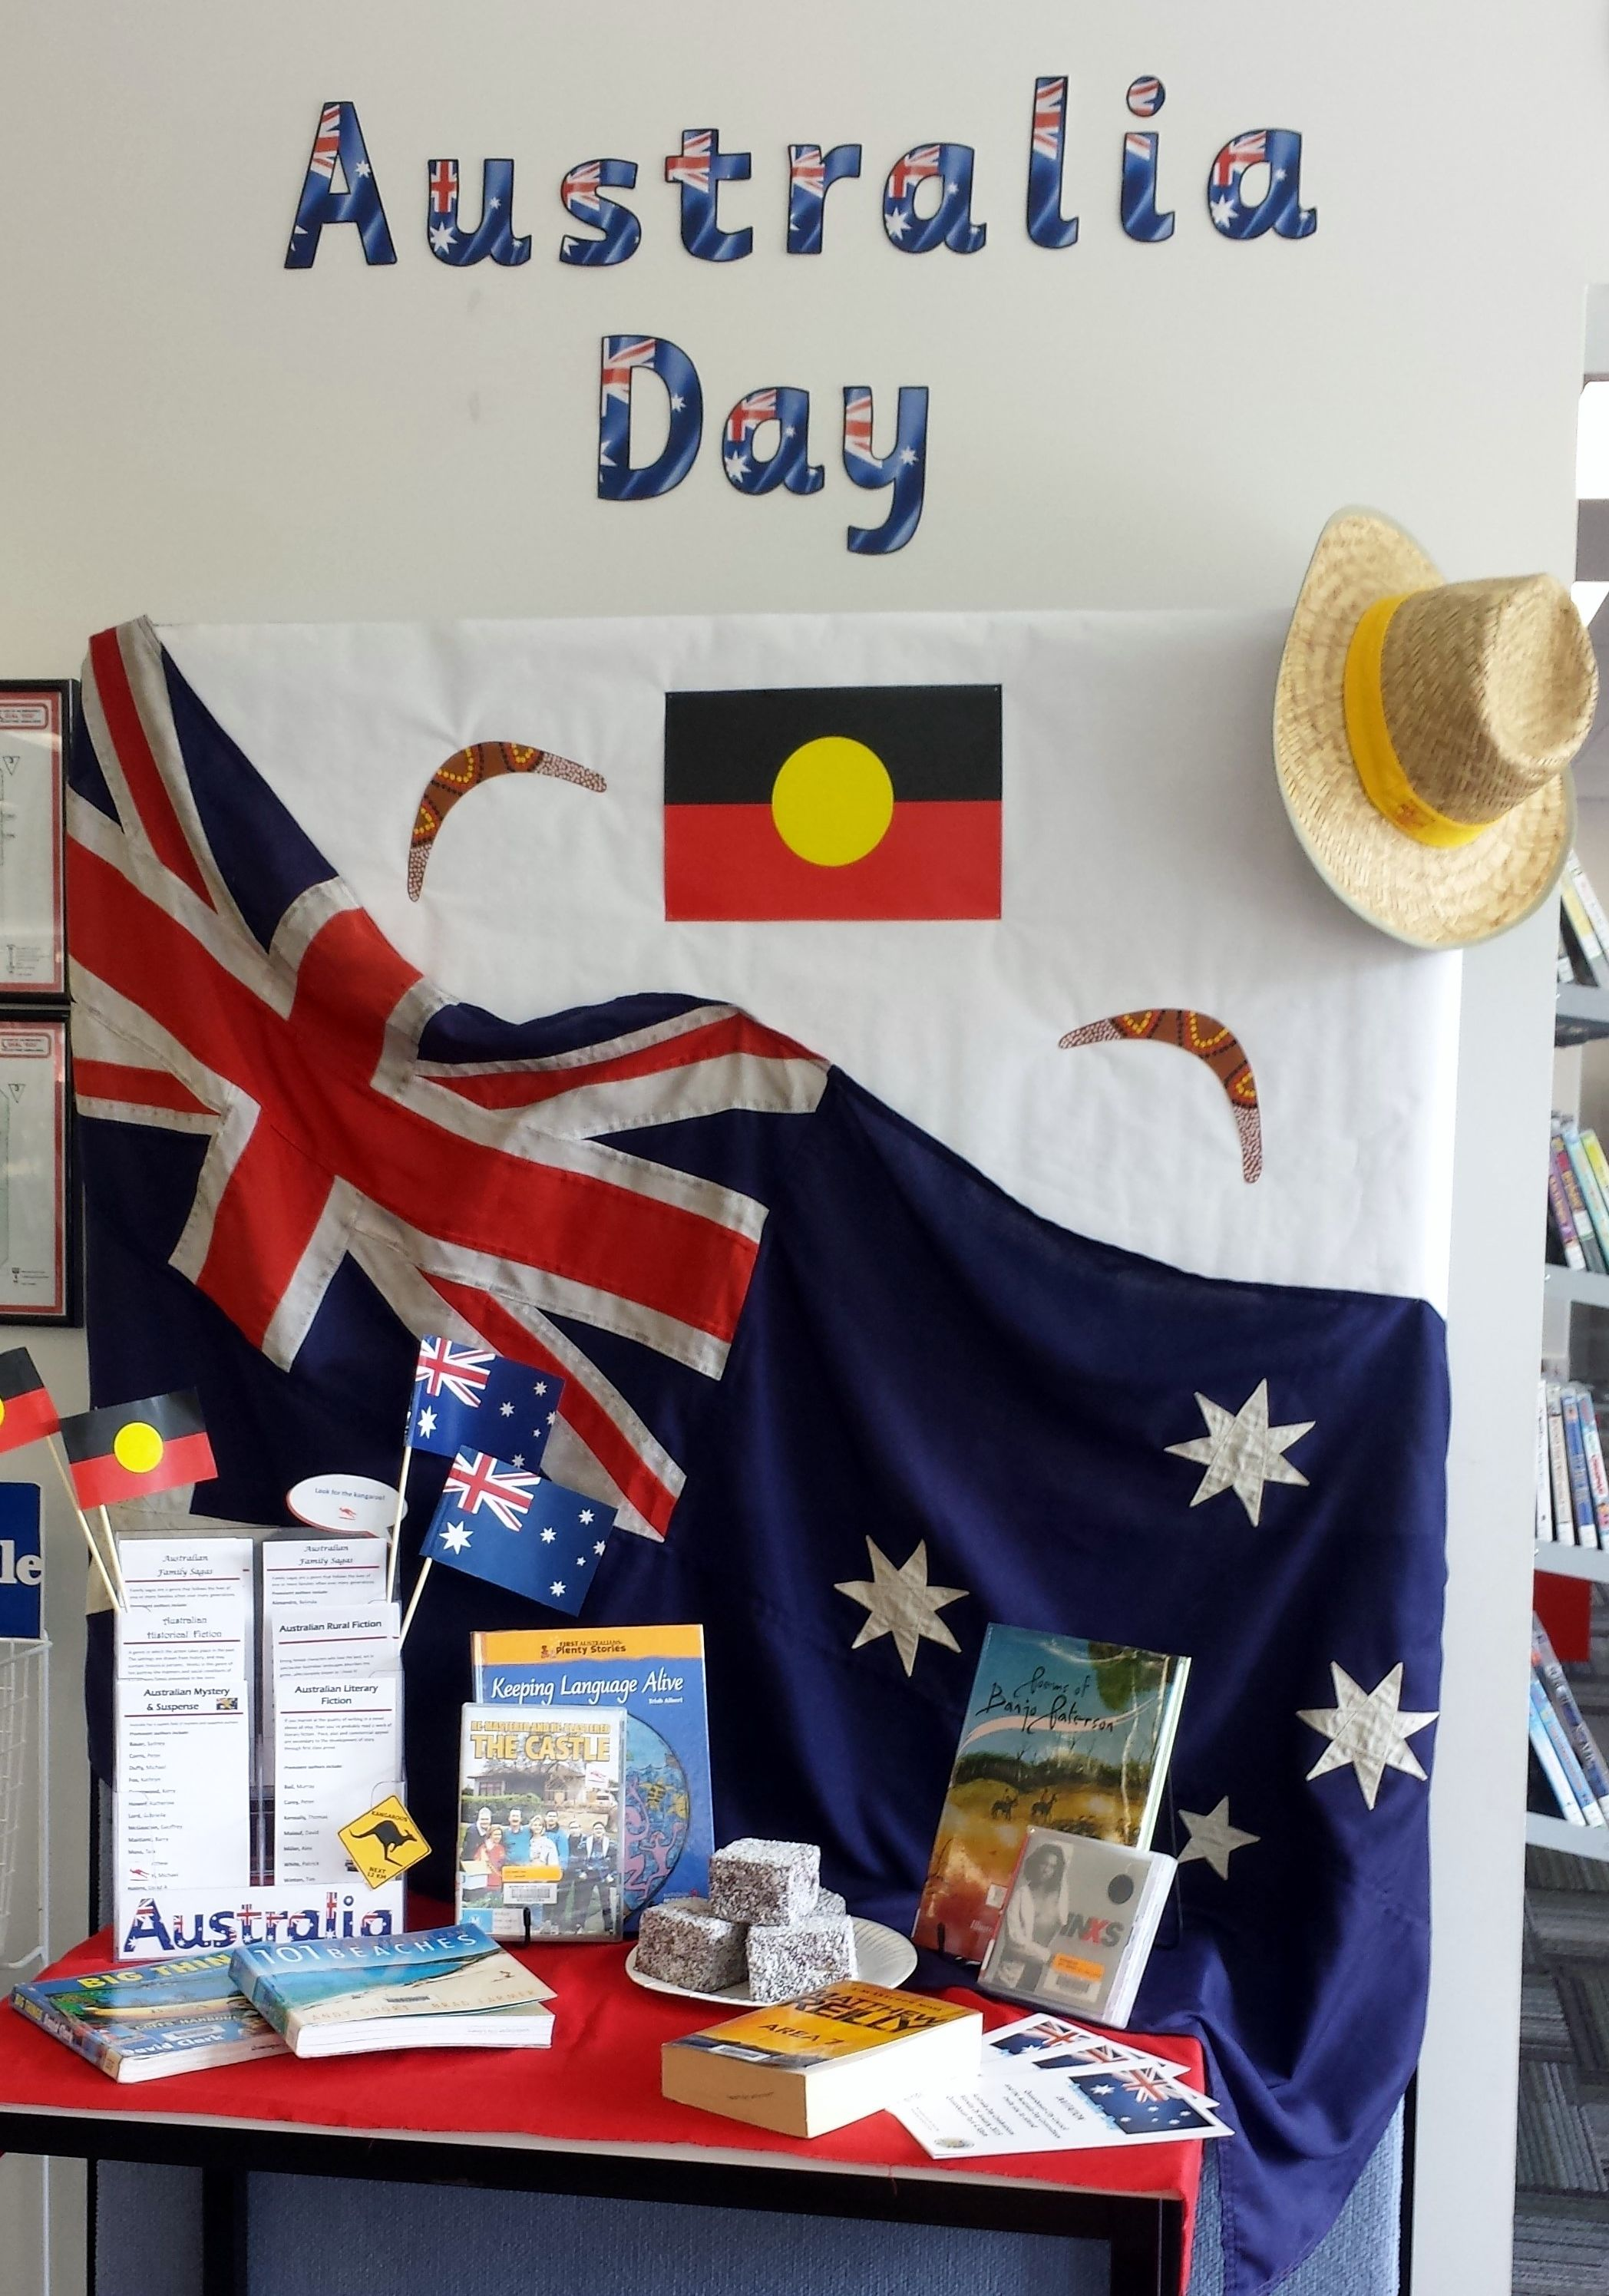 Australia Day Display Queanbeyan City Library